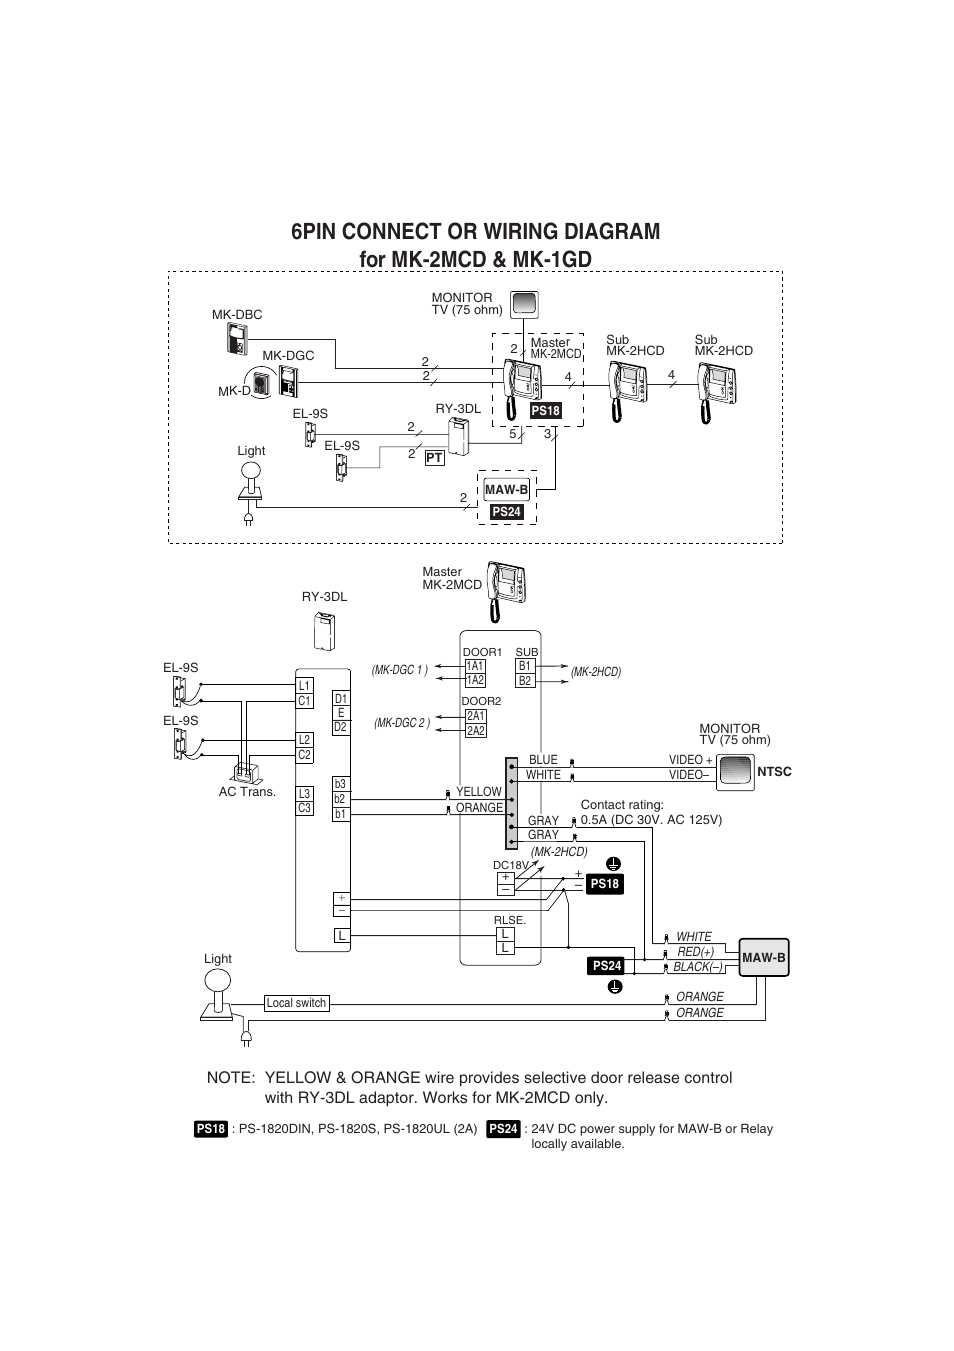 Aiphone Mk 2hcd User Manual Page 2 Also For 1gd Wiring Diagram